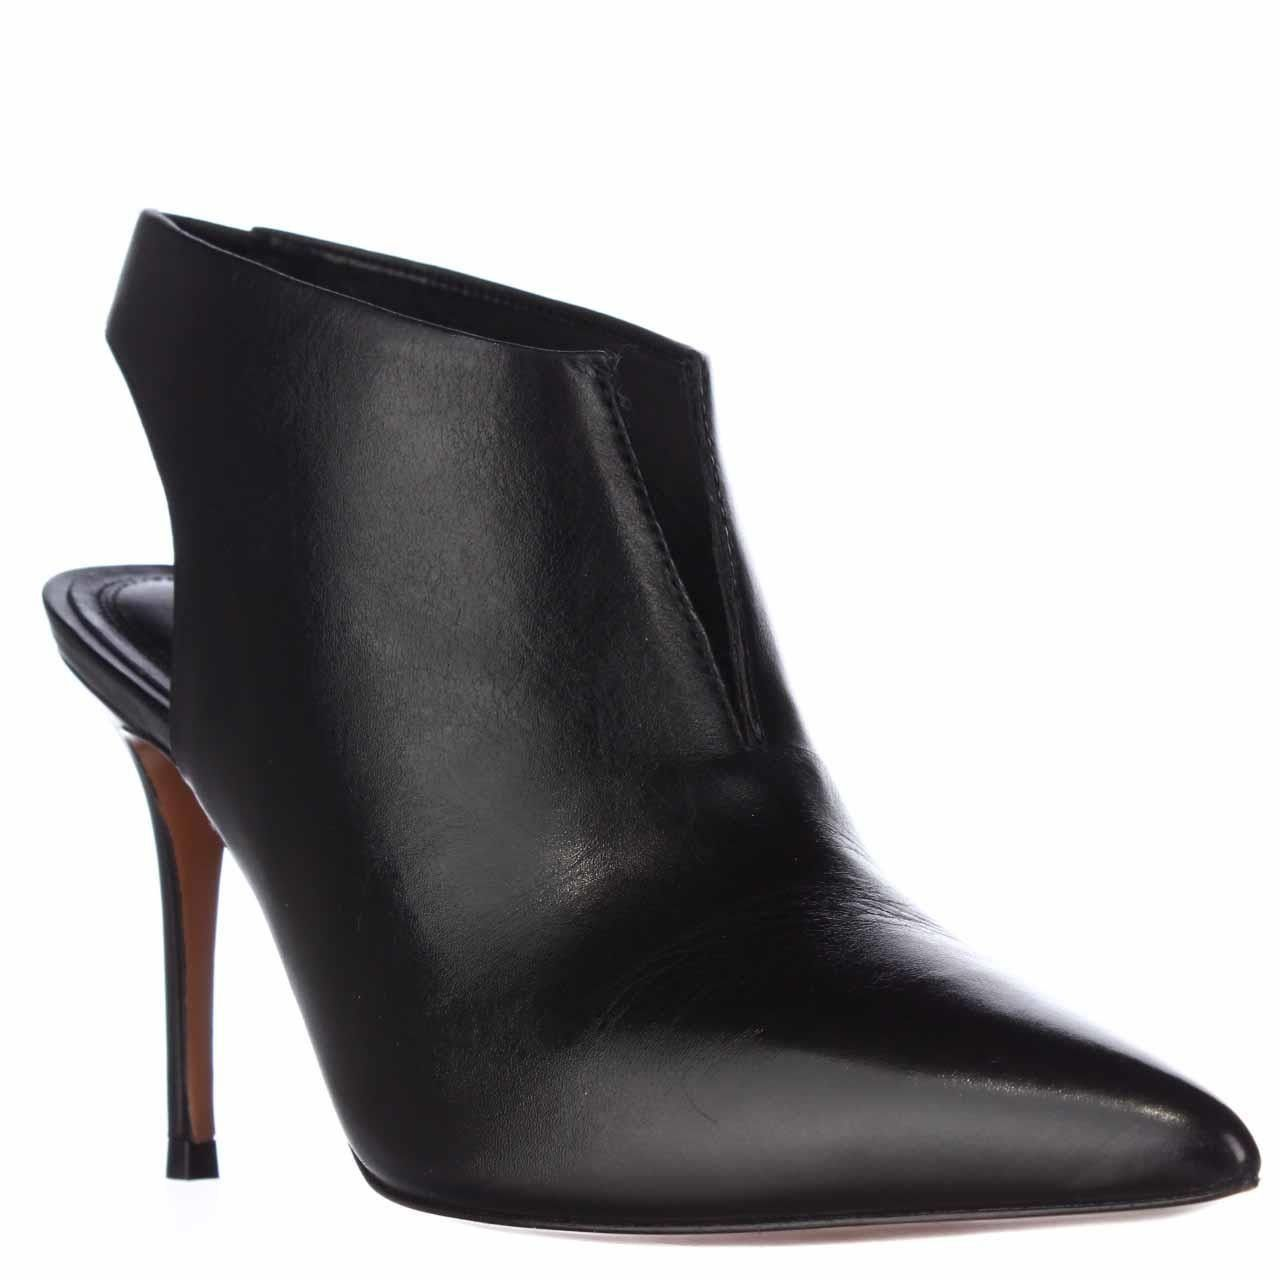 Marc Fisher Talia Pointed-Toe Heels - Black Leather